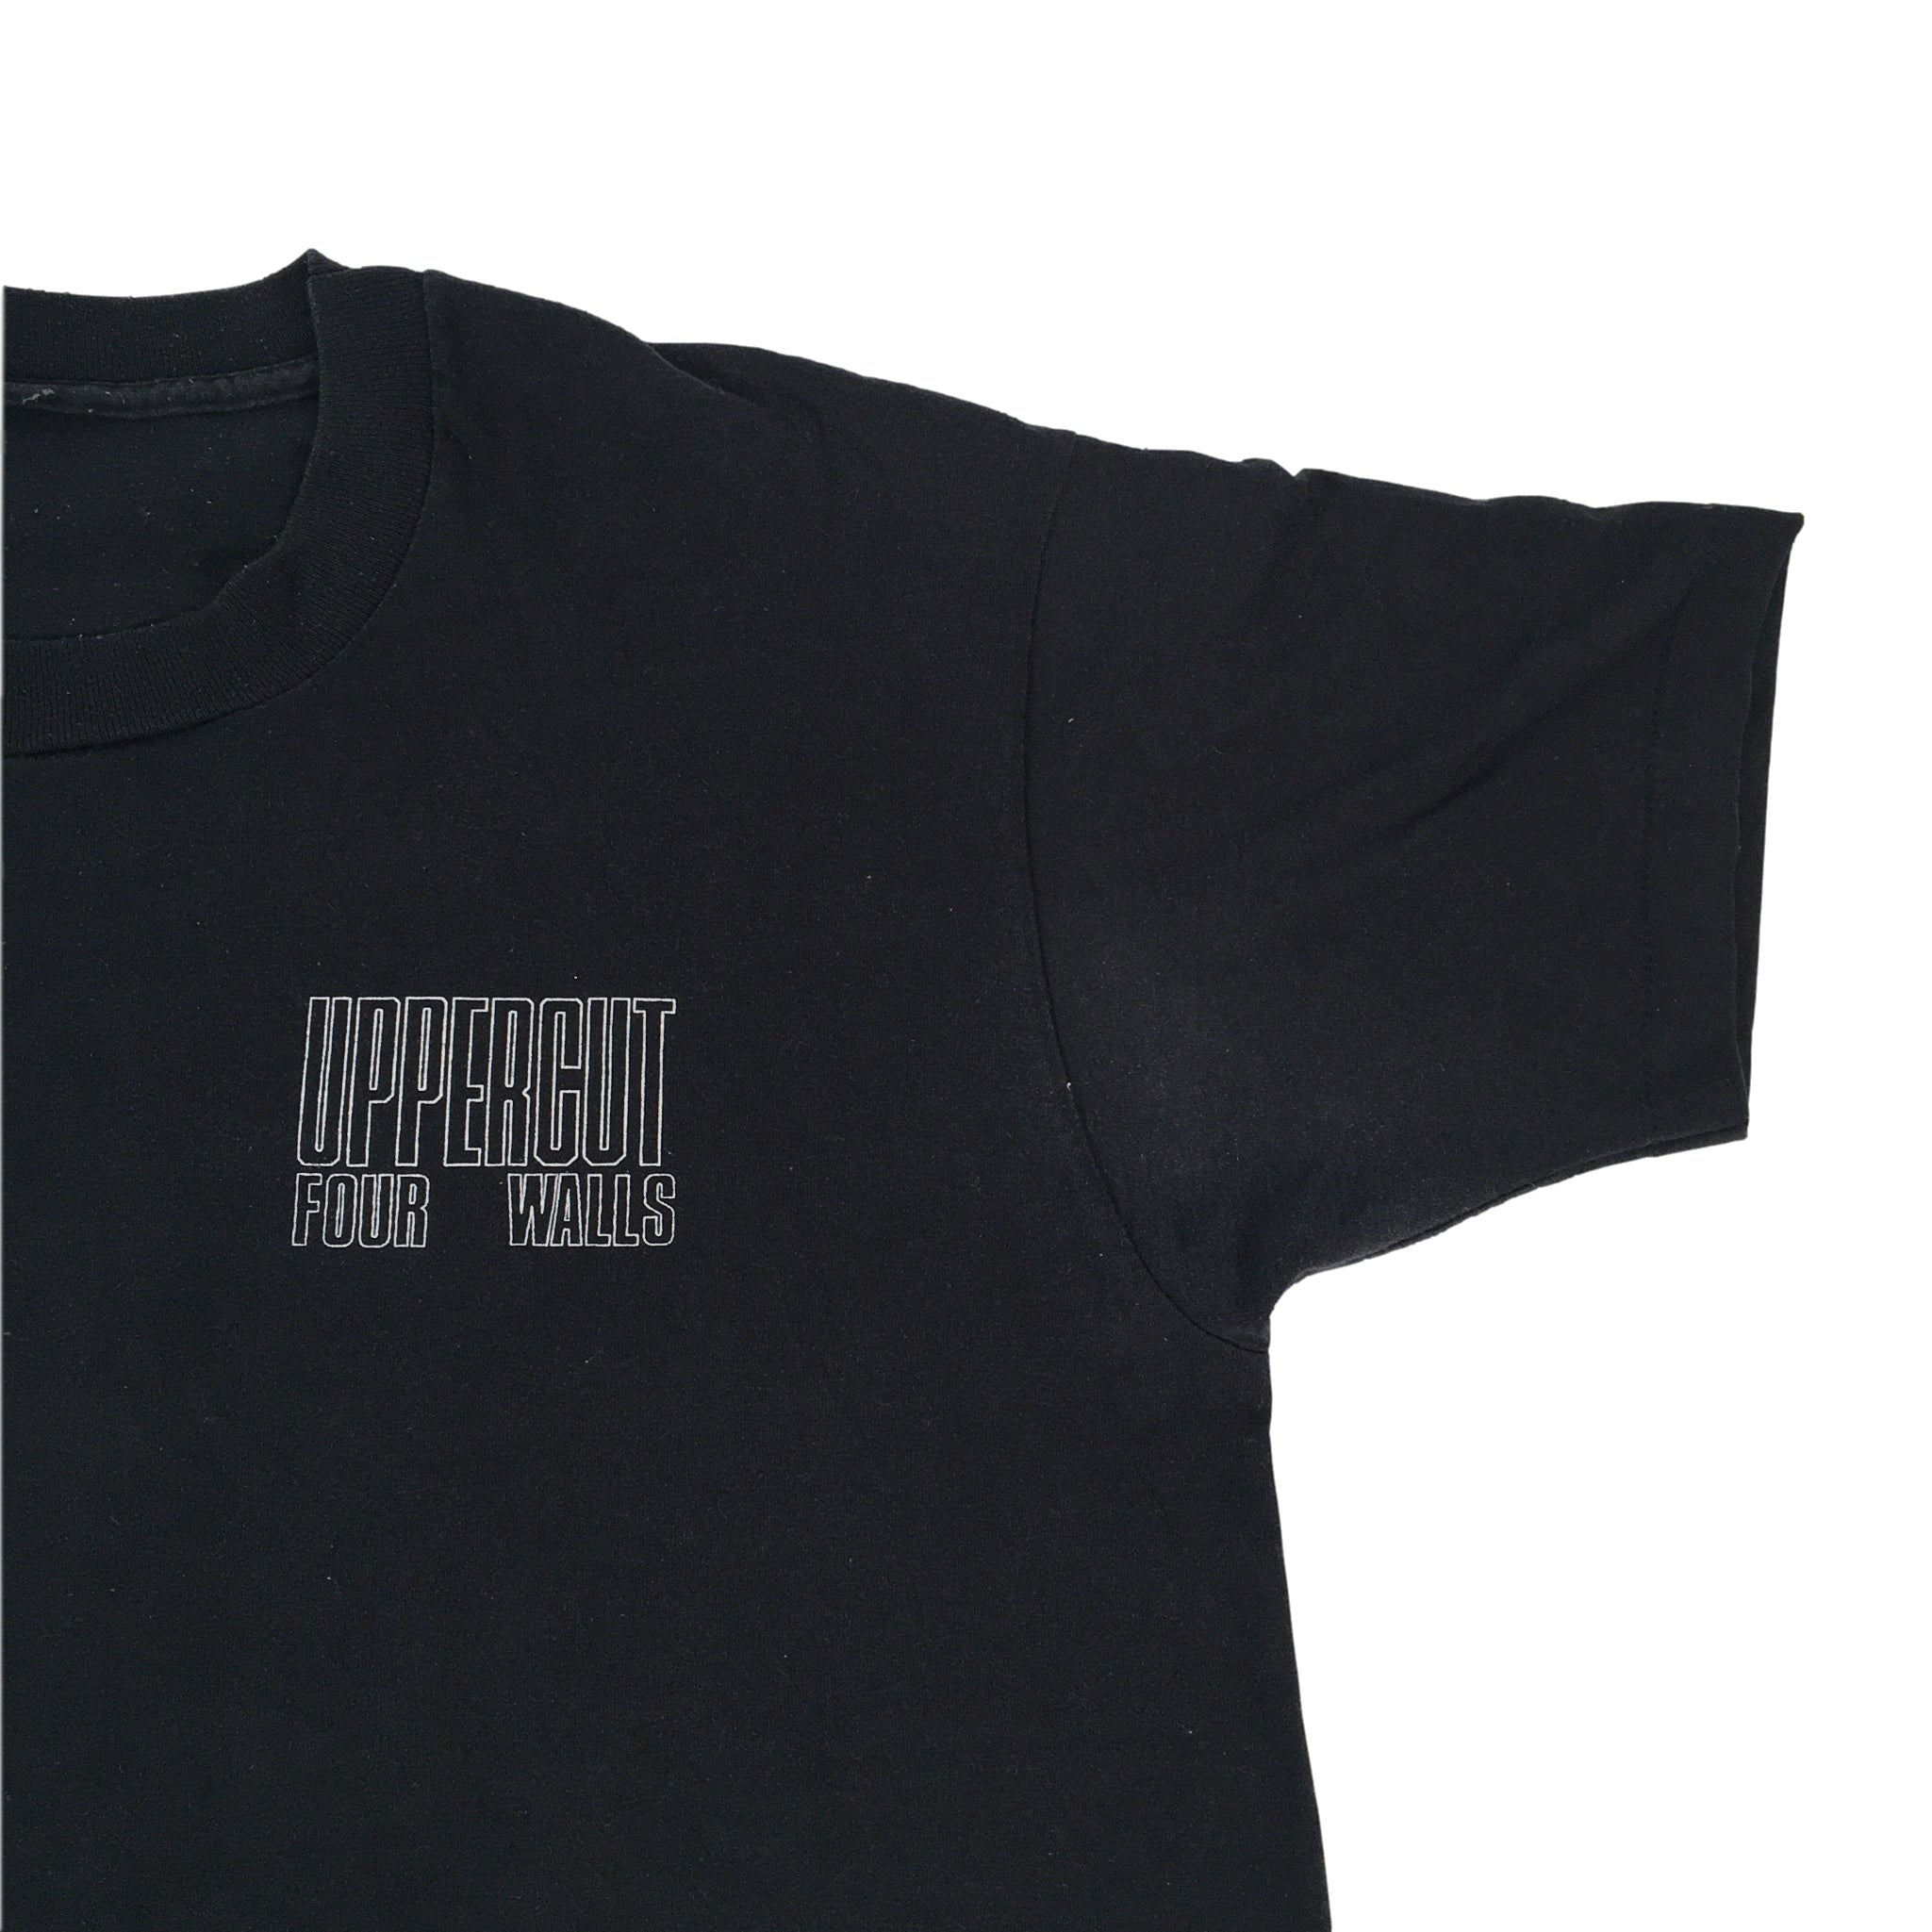 "Vintage Uppercut ""Four Walls"" T-Shirt"